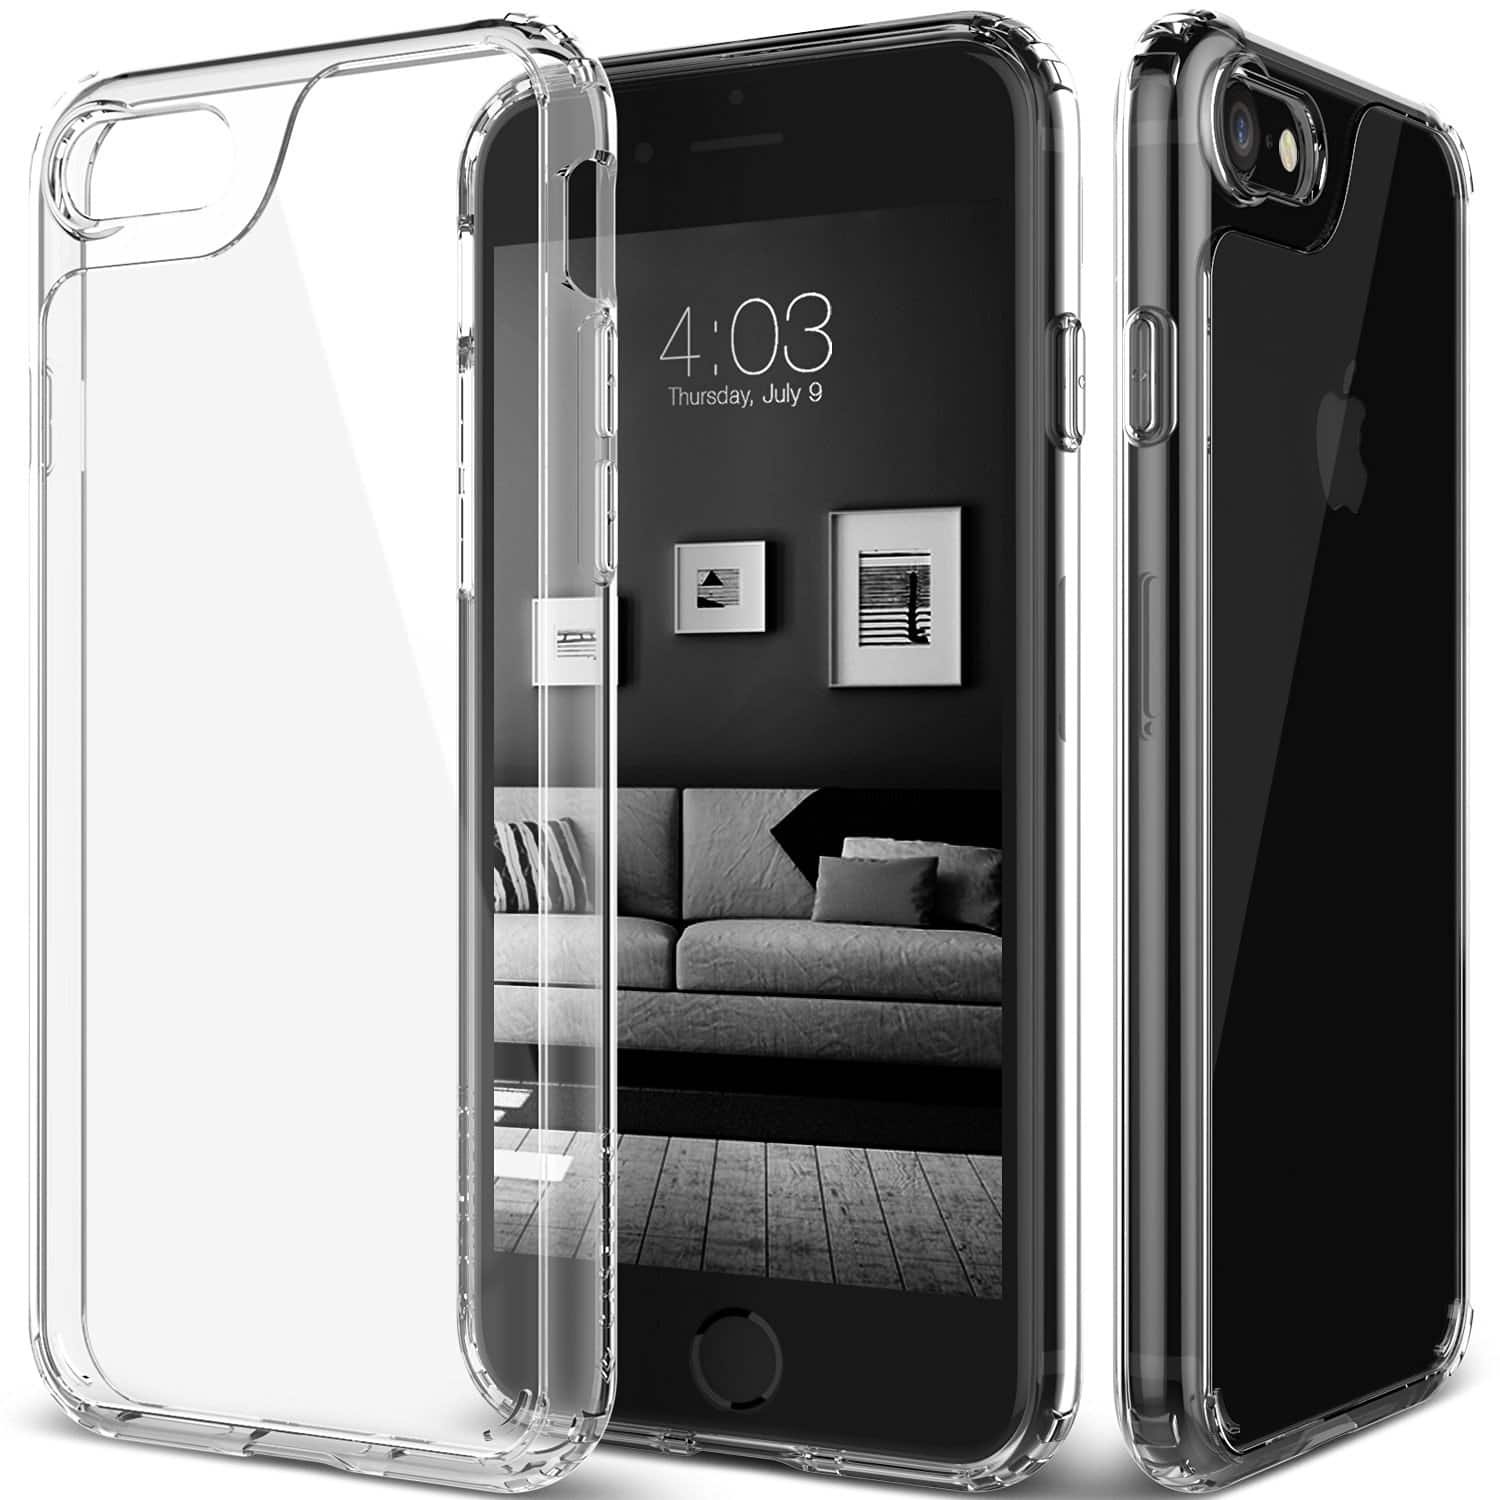 Caseology Waterfall Clear Case for iPhone 7 - $1.99+FS for Prime